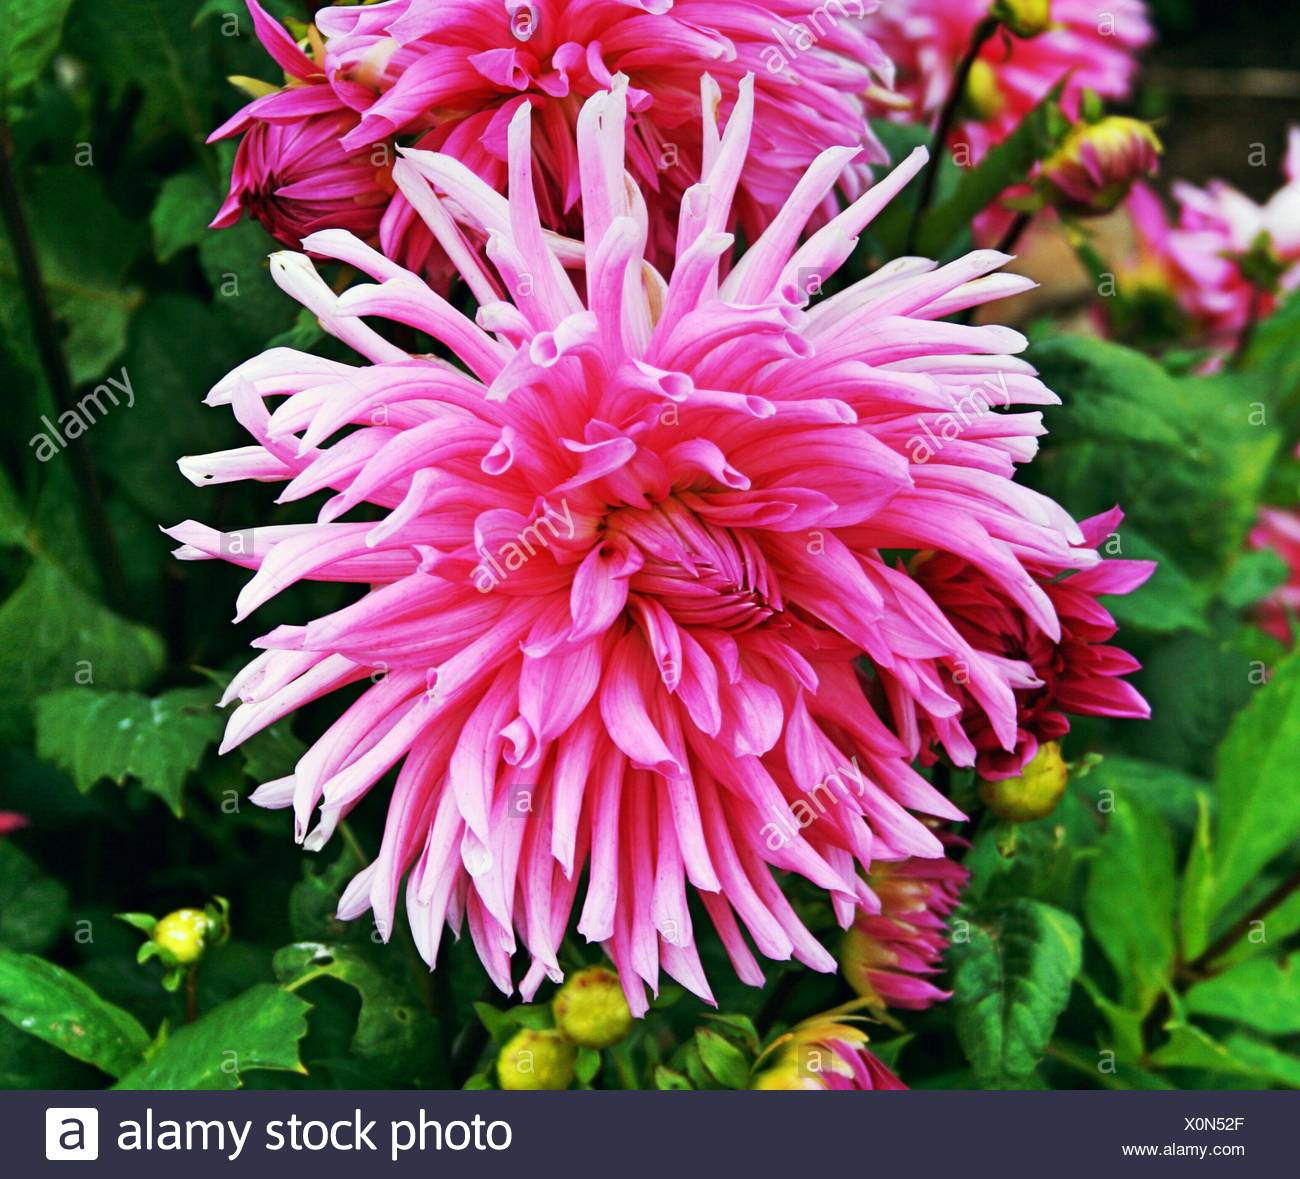 Close-Up Of Pink Flowers And Leaves - Stock Image